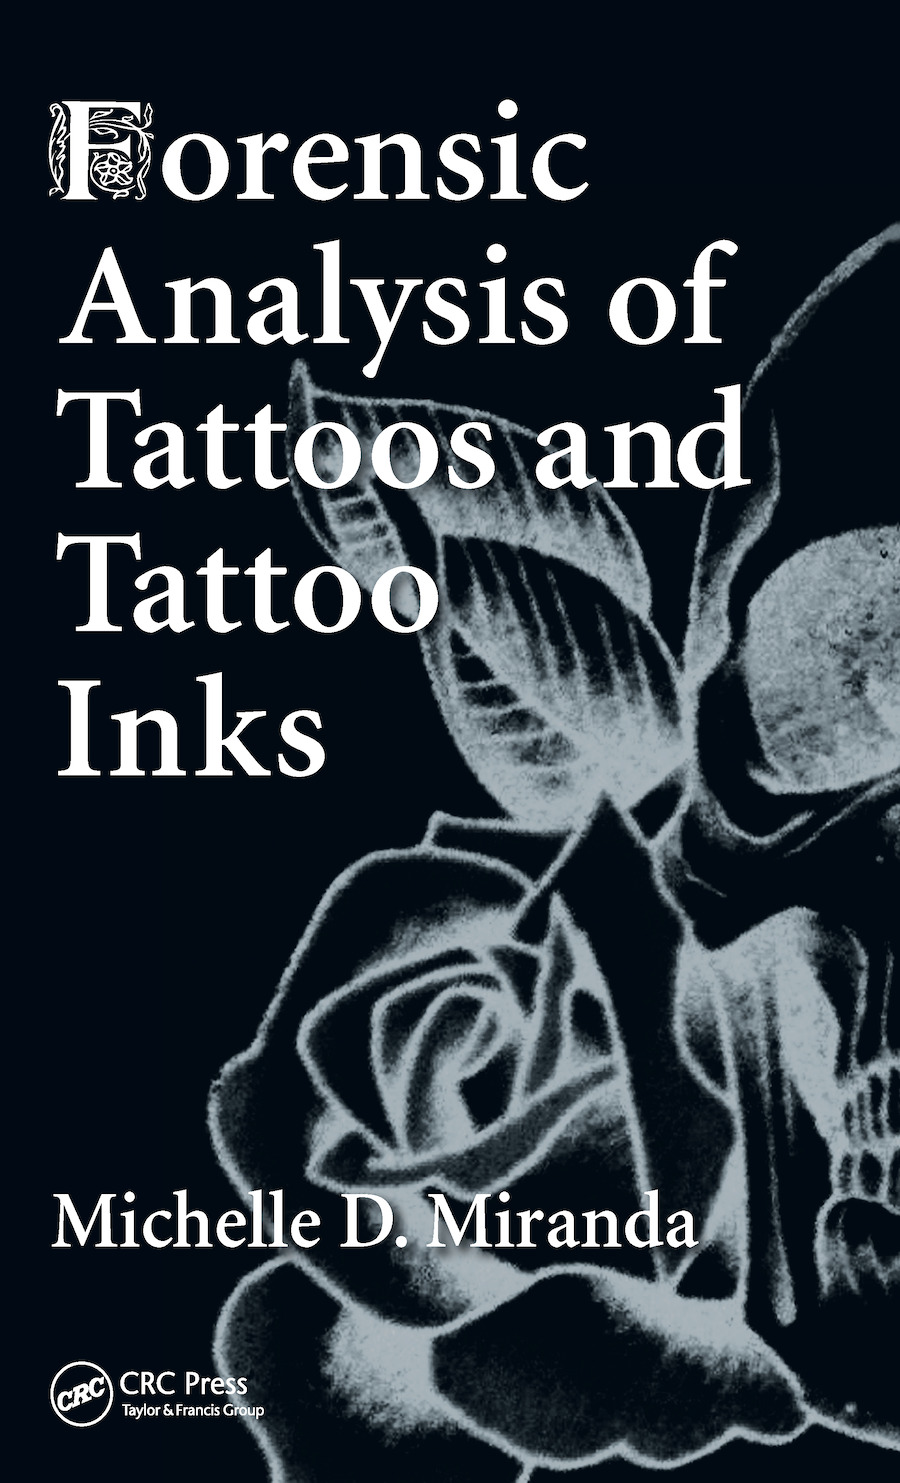 Forensic Analysis of Tattoos and Tattoo Inks